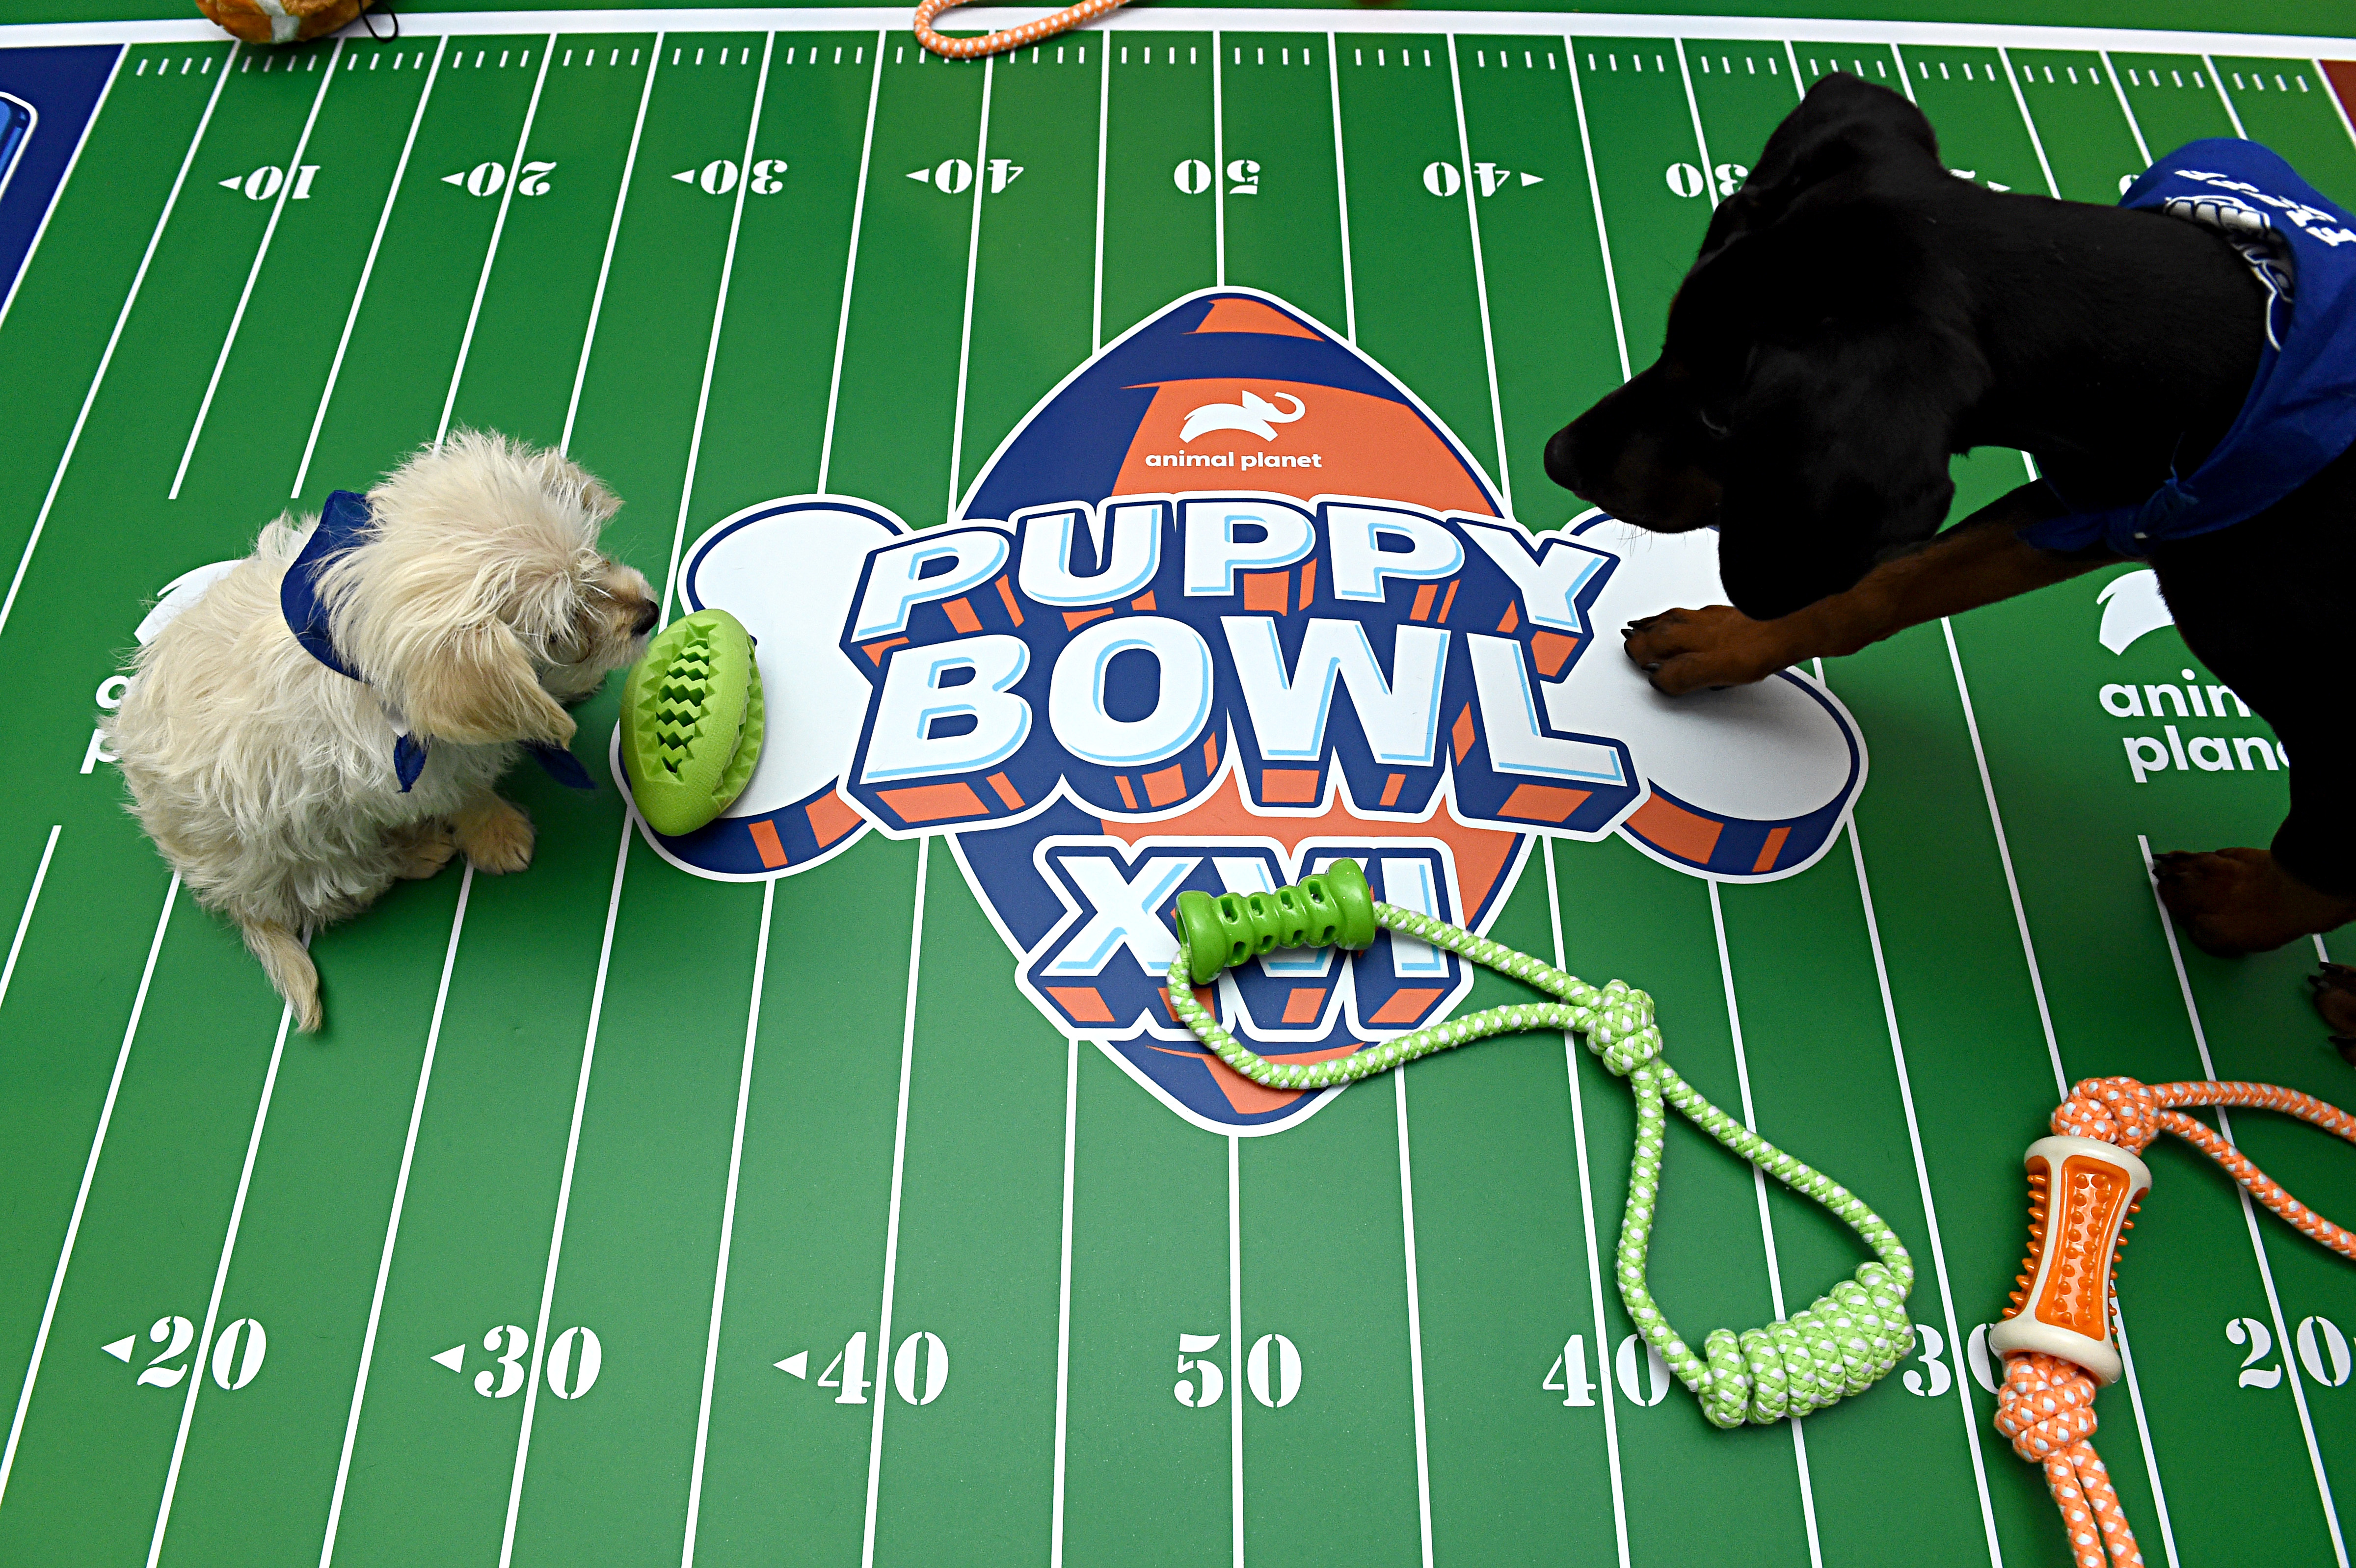 The Animal Planet Puppy Bowl break during the Discovery, Inc. TCA Winter Panel 2020 at The Langham Huntington, Pasadena on January 16, 2020 in Pasadena, California.